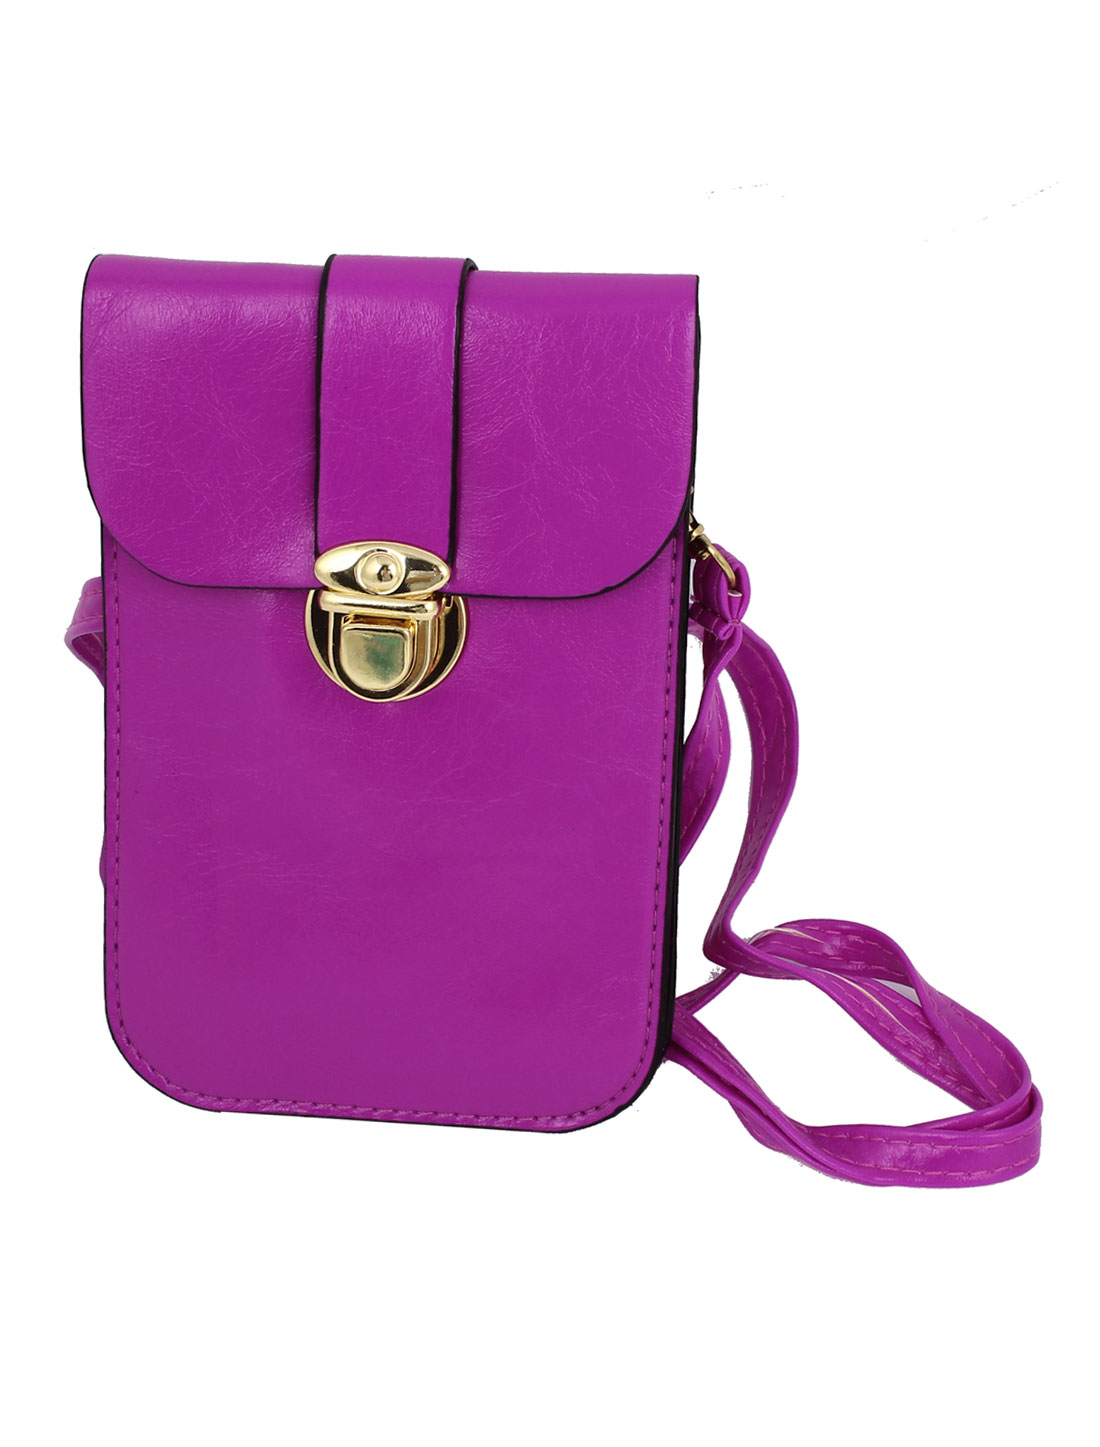 Ladies Faux Leather 2 Compartments Push Lock Closure Cross-Body Bag Purse Fuchsia